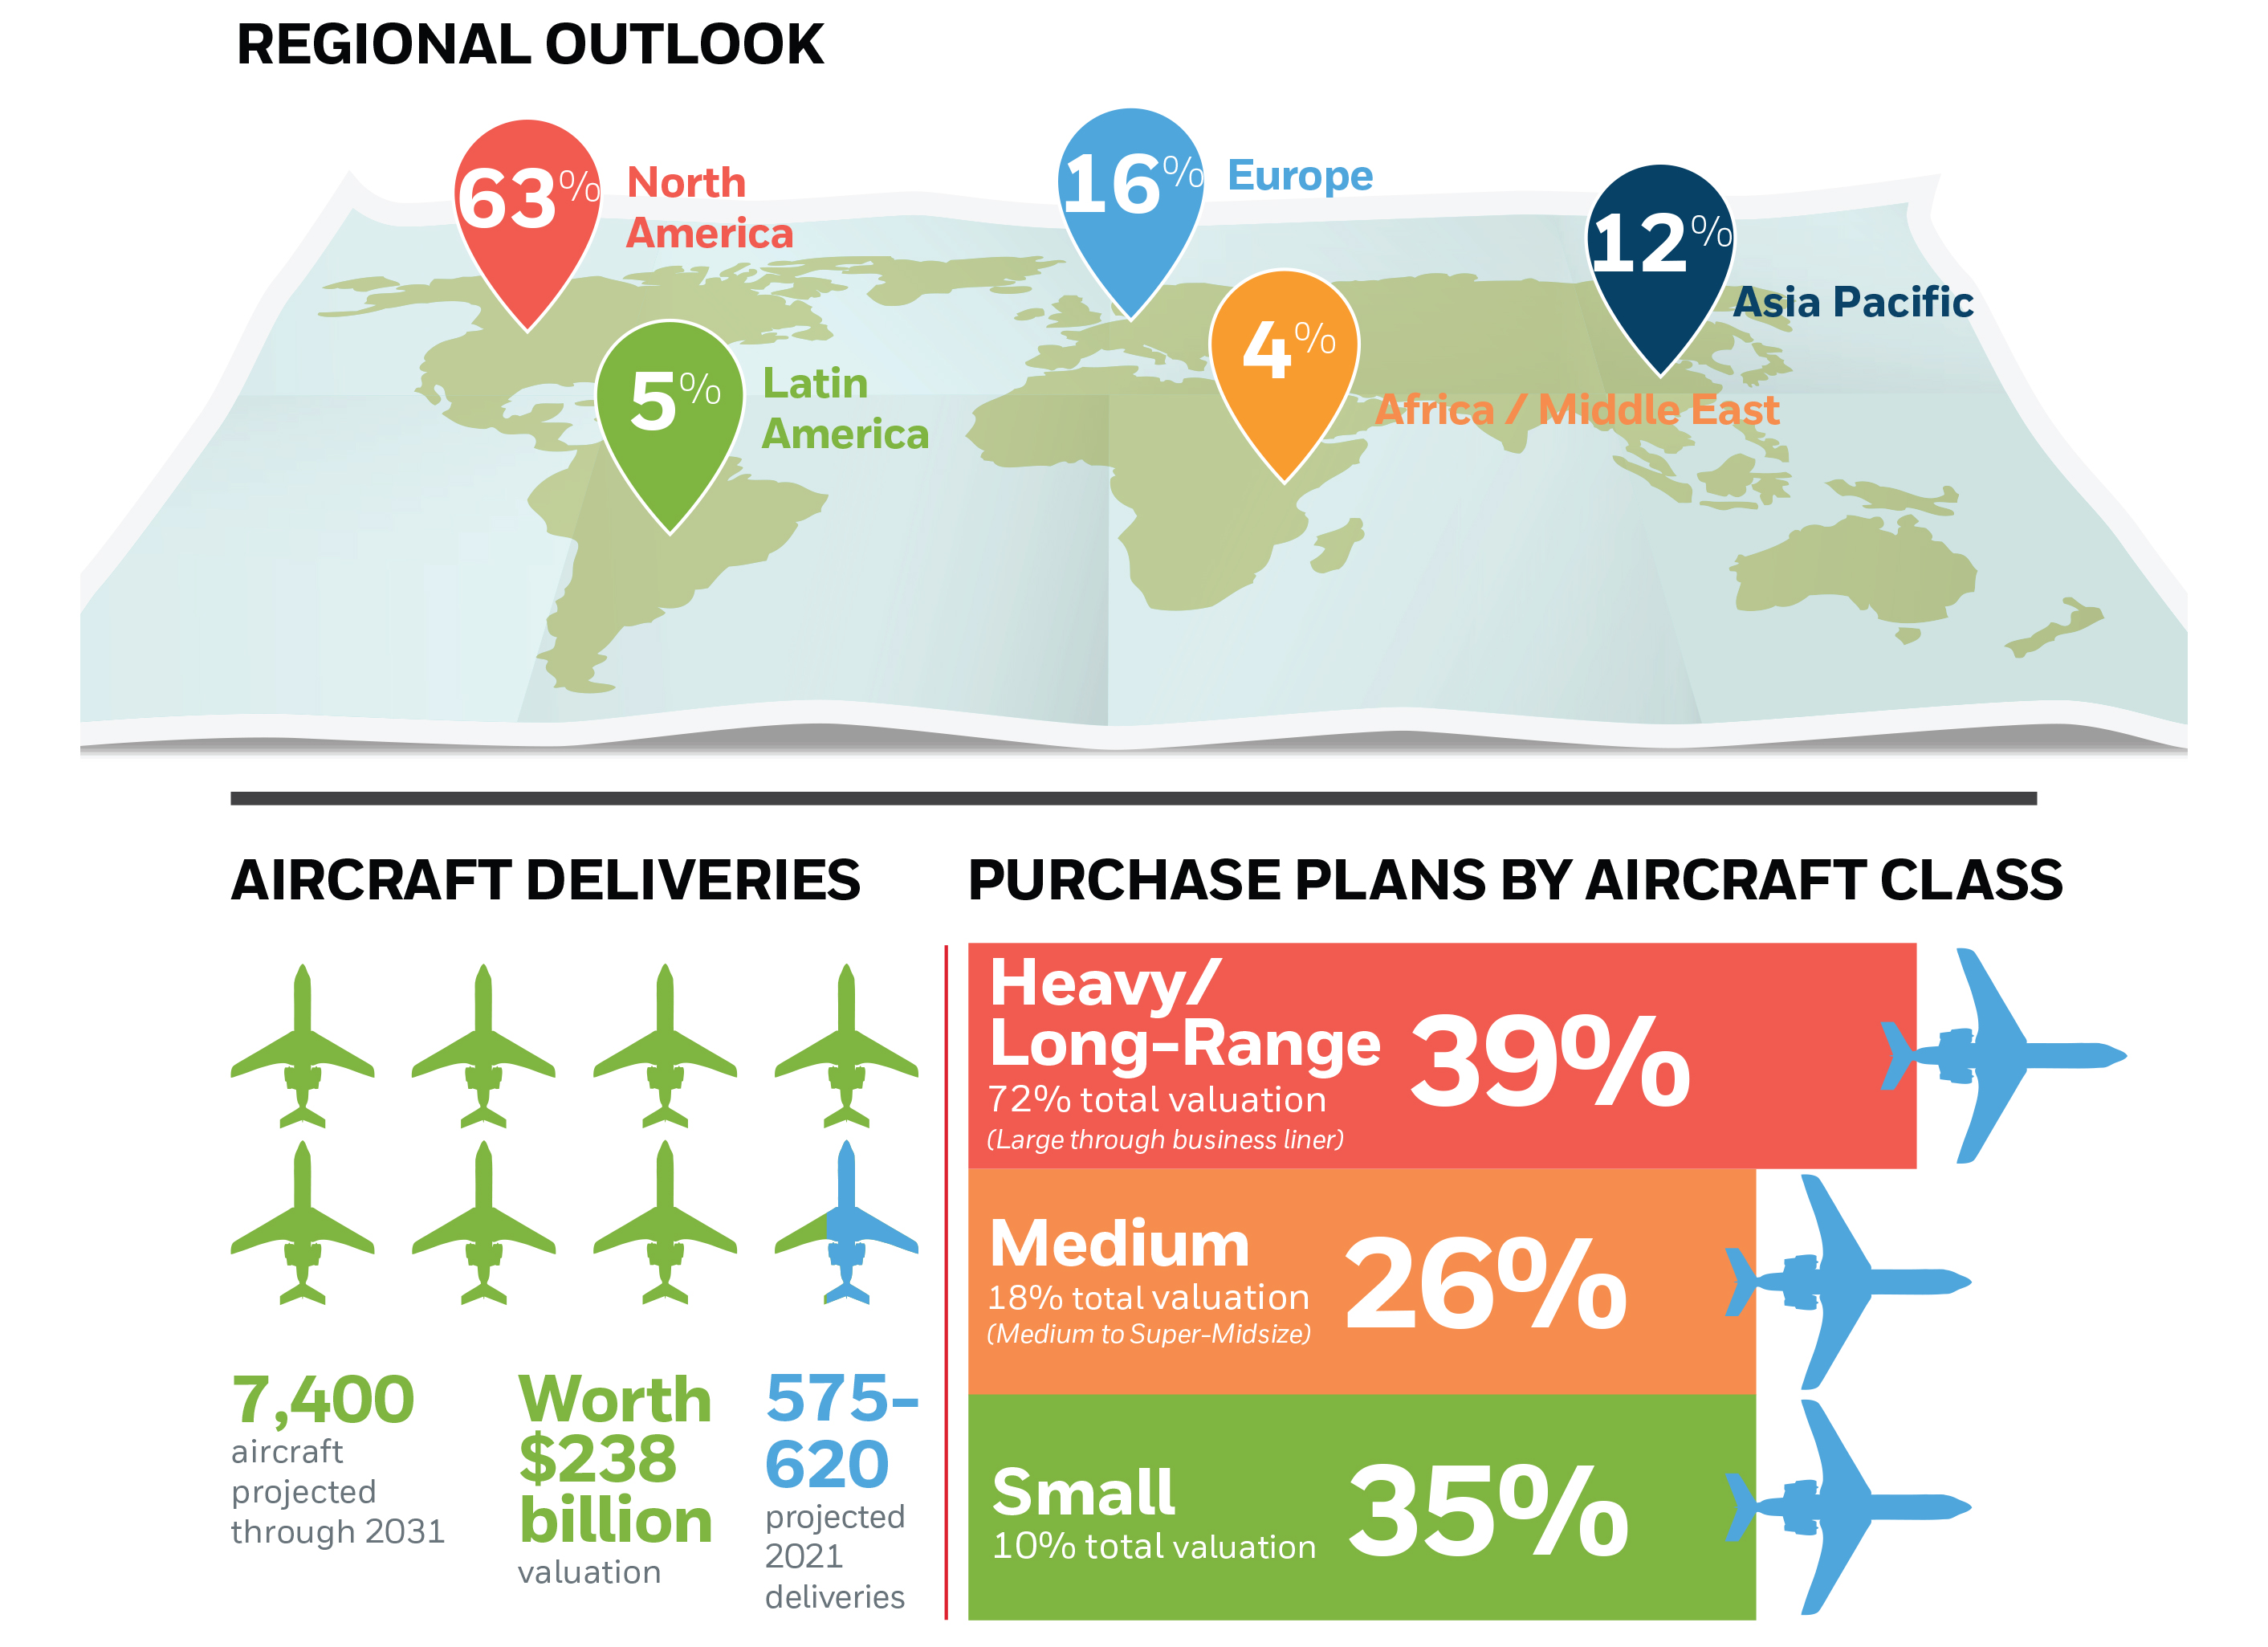 Honeywell surveyed 1,522 business jet operators and compiled additional data from aircraft manufacturers and other sources to predict growth in business aviation in coming years. Image courtesy of Honeywell.